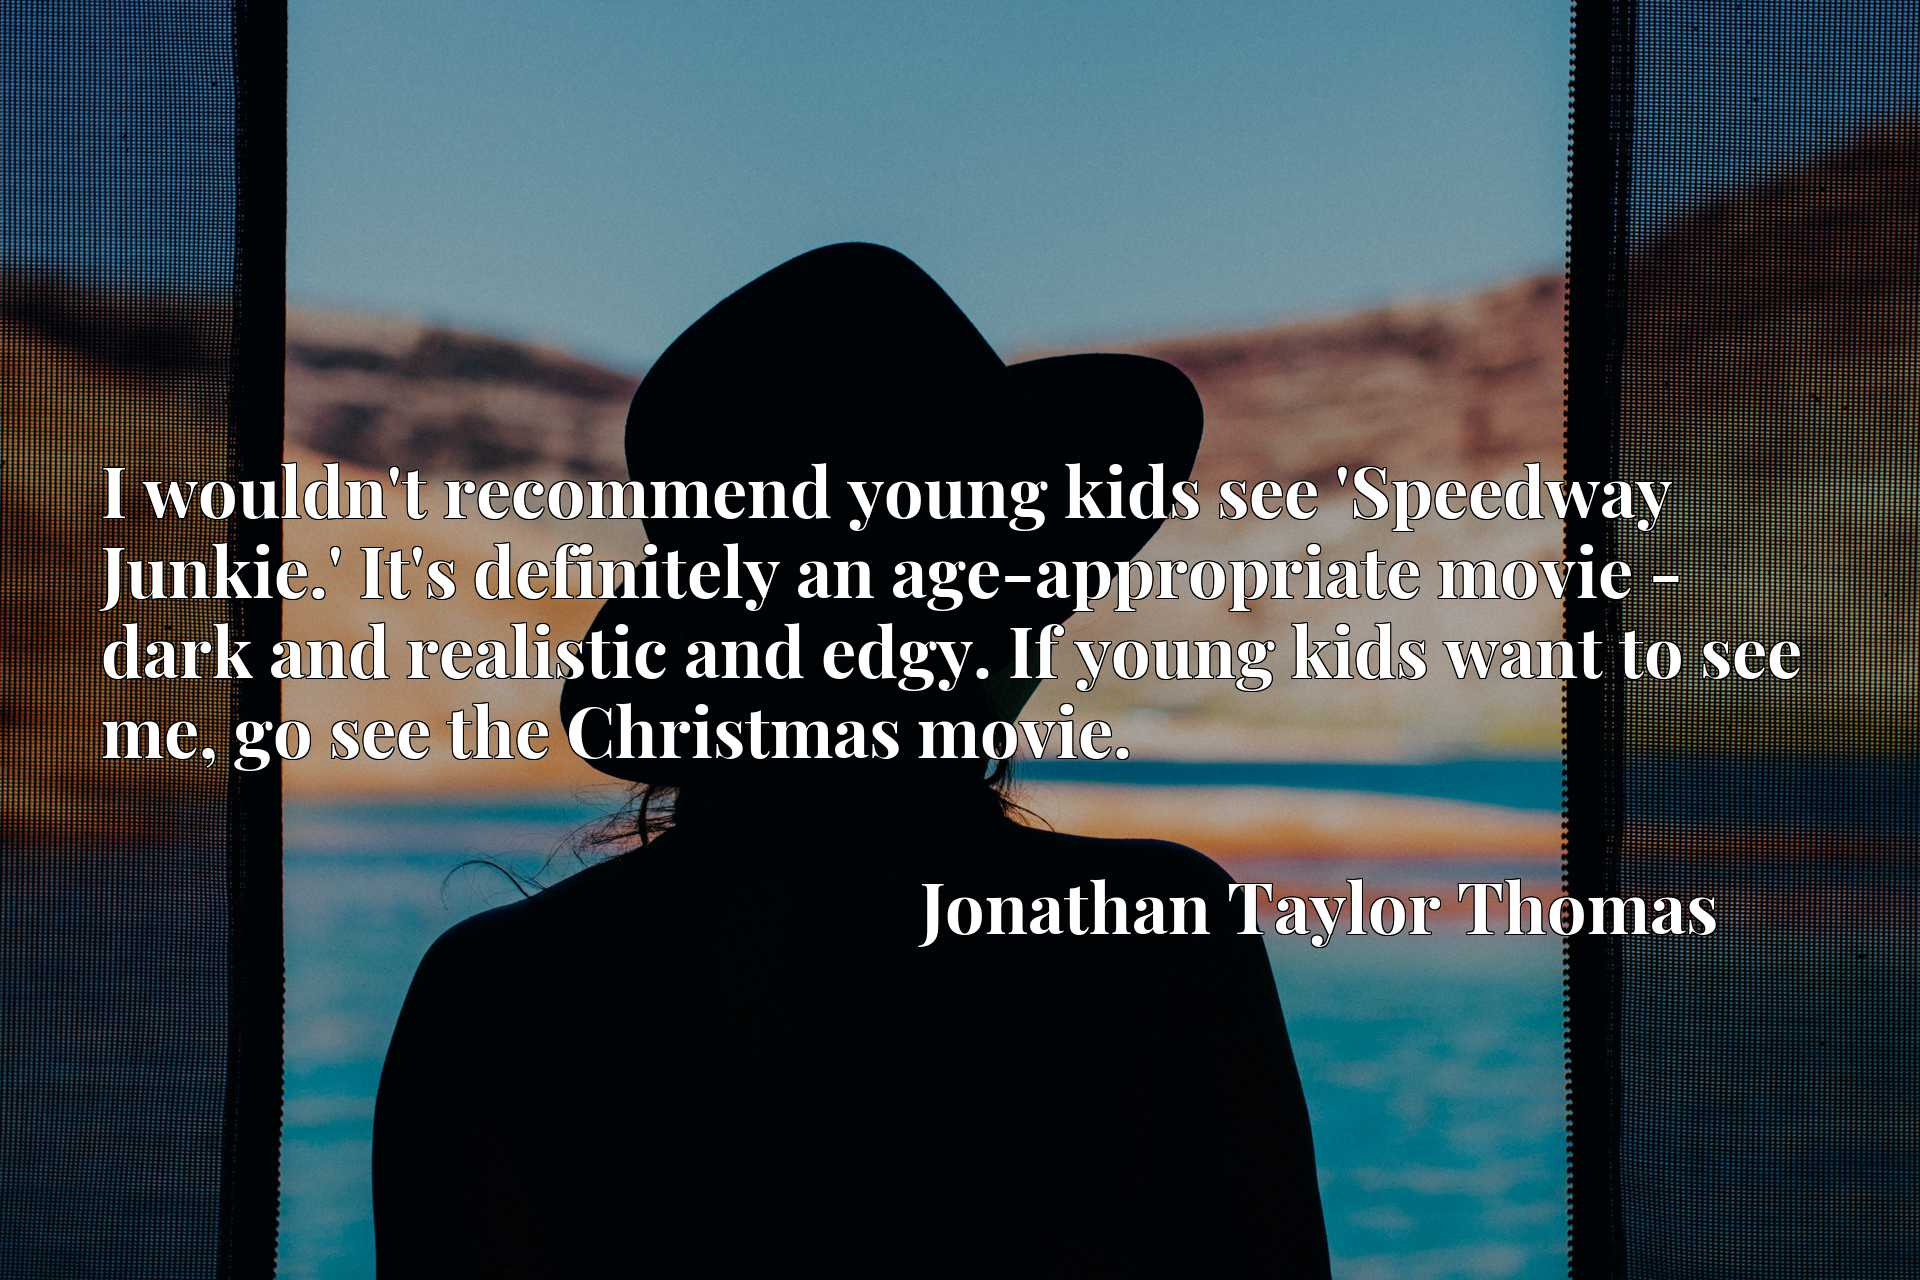 I wouldn't recommend young kids see 'Speedway Junkie.' It's definitely an age-appropriate movie - dark and realistic and edgy. If young kids want to see me, go see the Christmas movie.